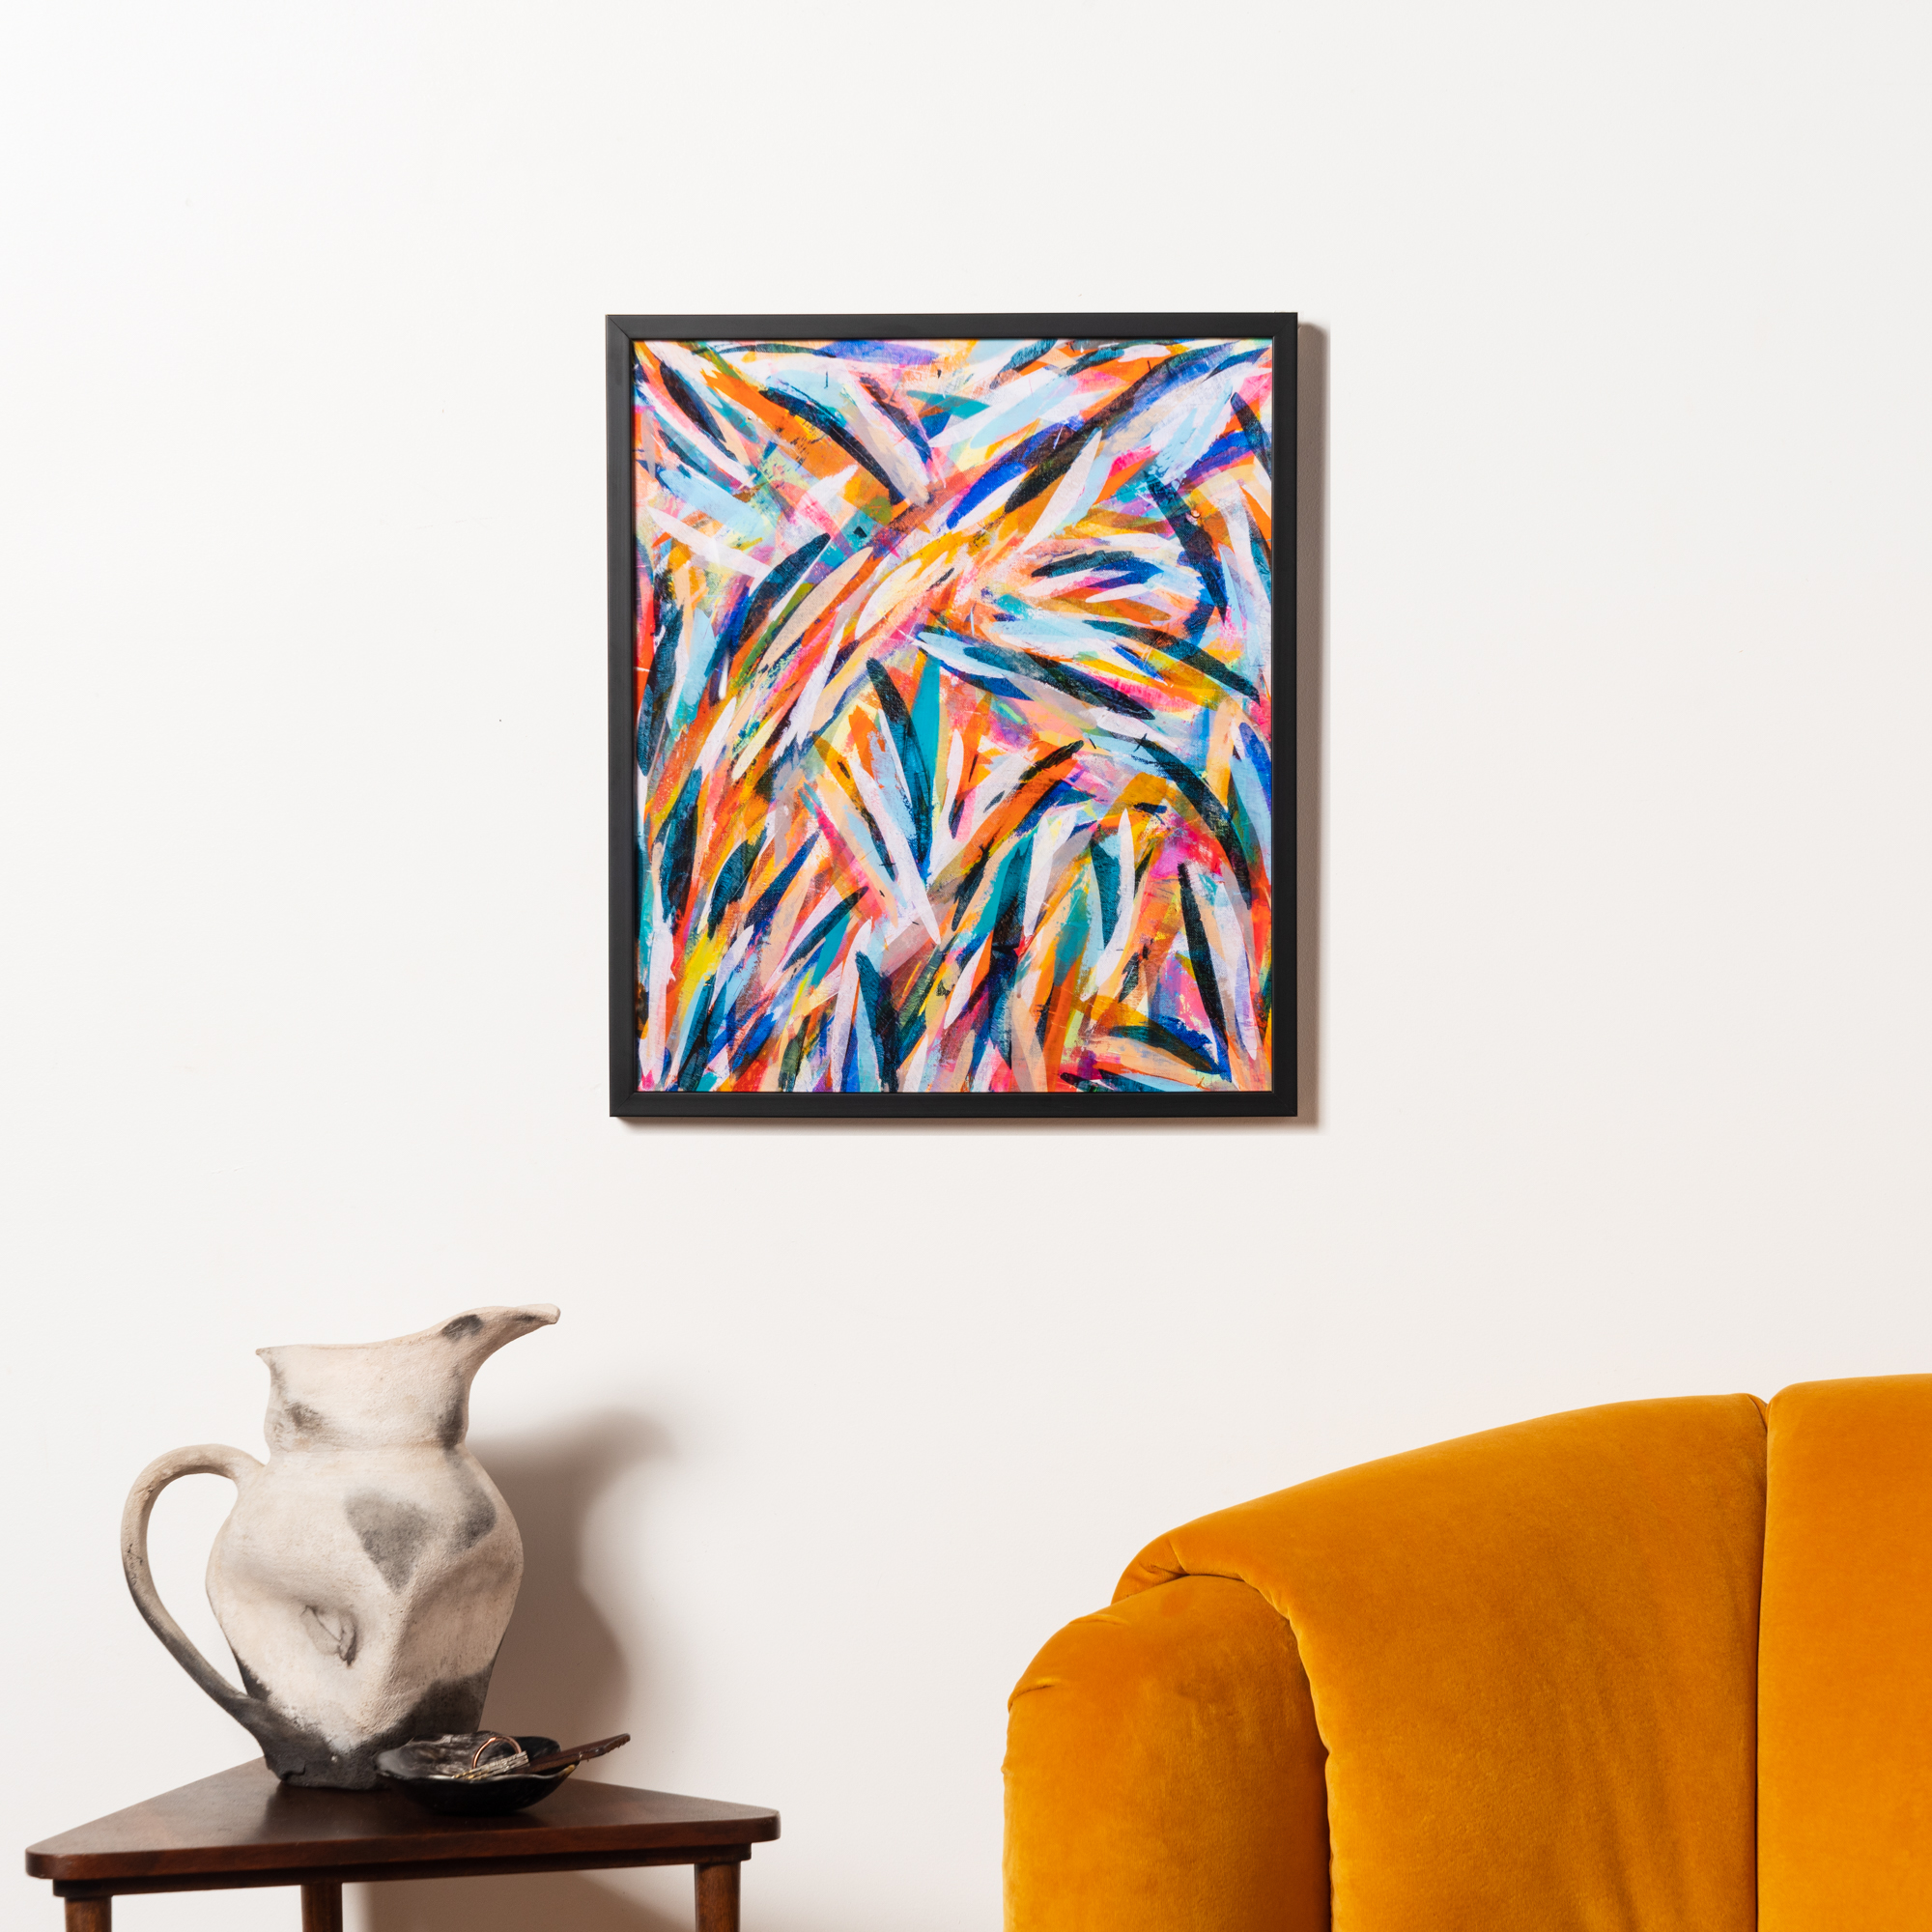 colorful, abstract art in black frame